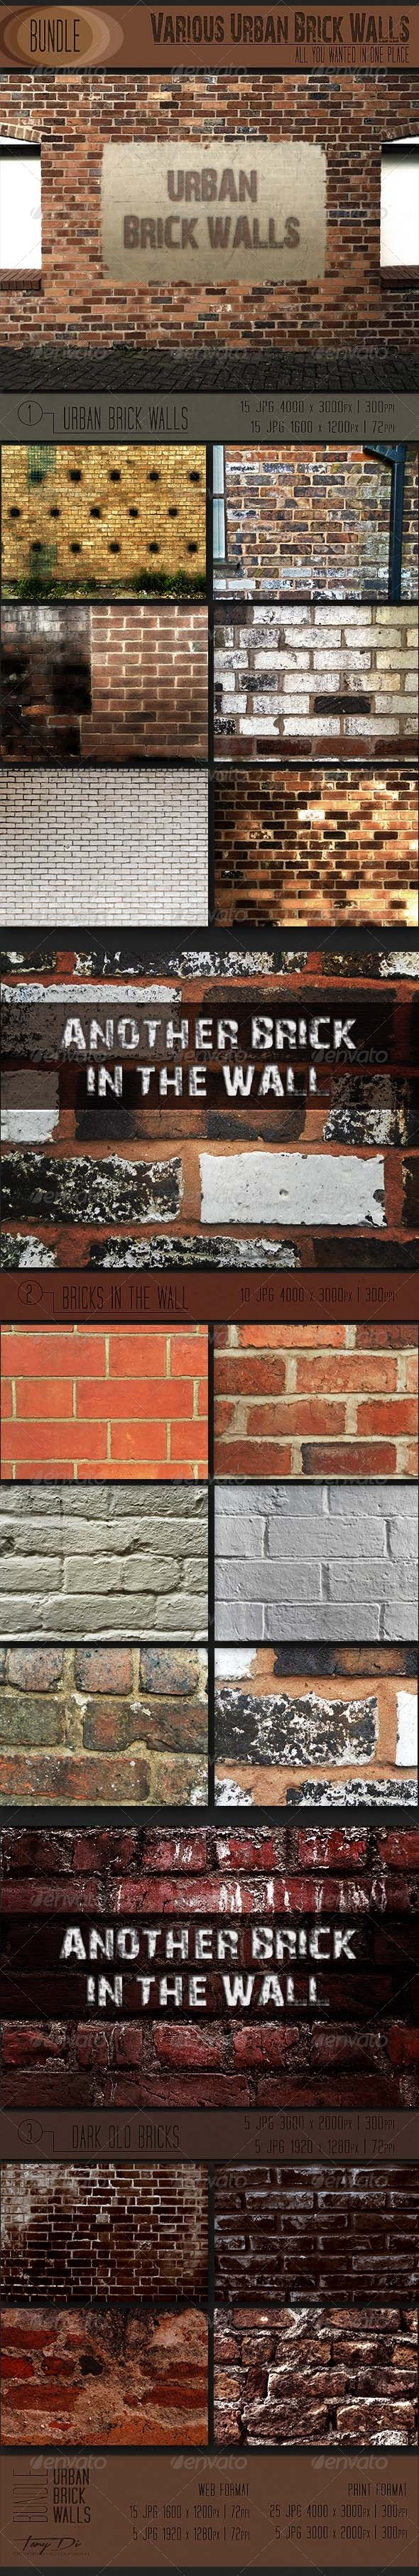 GraphicRiver Various Urban Brick Walls Bundle 6757989